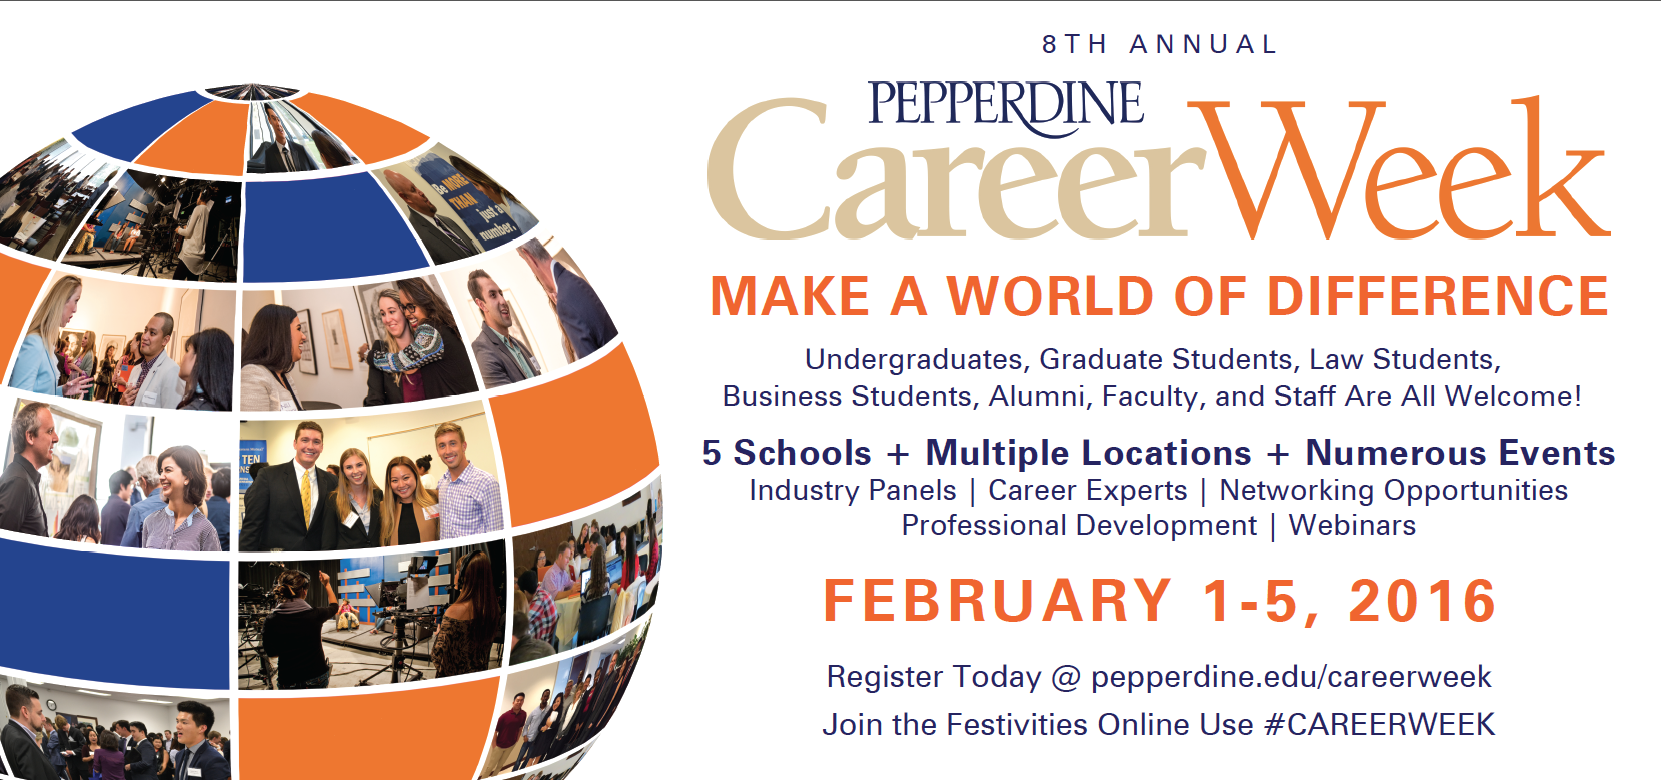 The eighth annual Pepperdine Career Week is open to all Pepperdine University students, alumni, faculty, staff, and friends. The week features professional development activities and programs for students preparing to make the transition from classroom to career and alumni seeking a competitive advantage in the workplace. Events will occur over five days at five Pepperdine campuses across Southern California as well as online sessions.